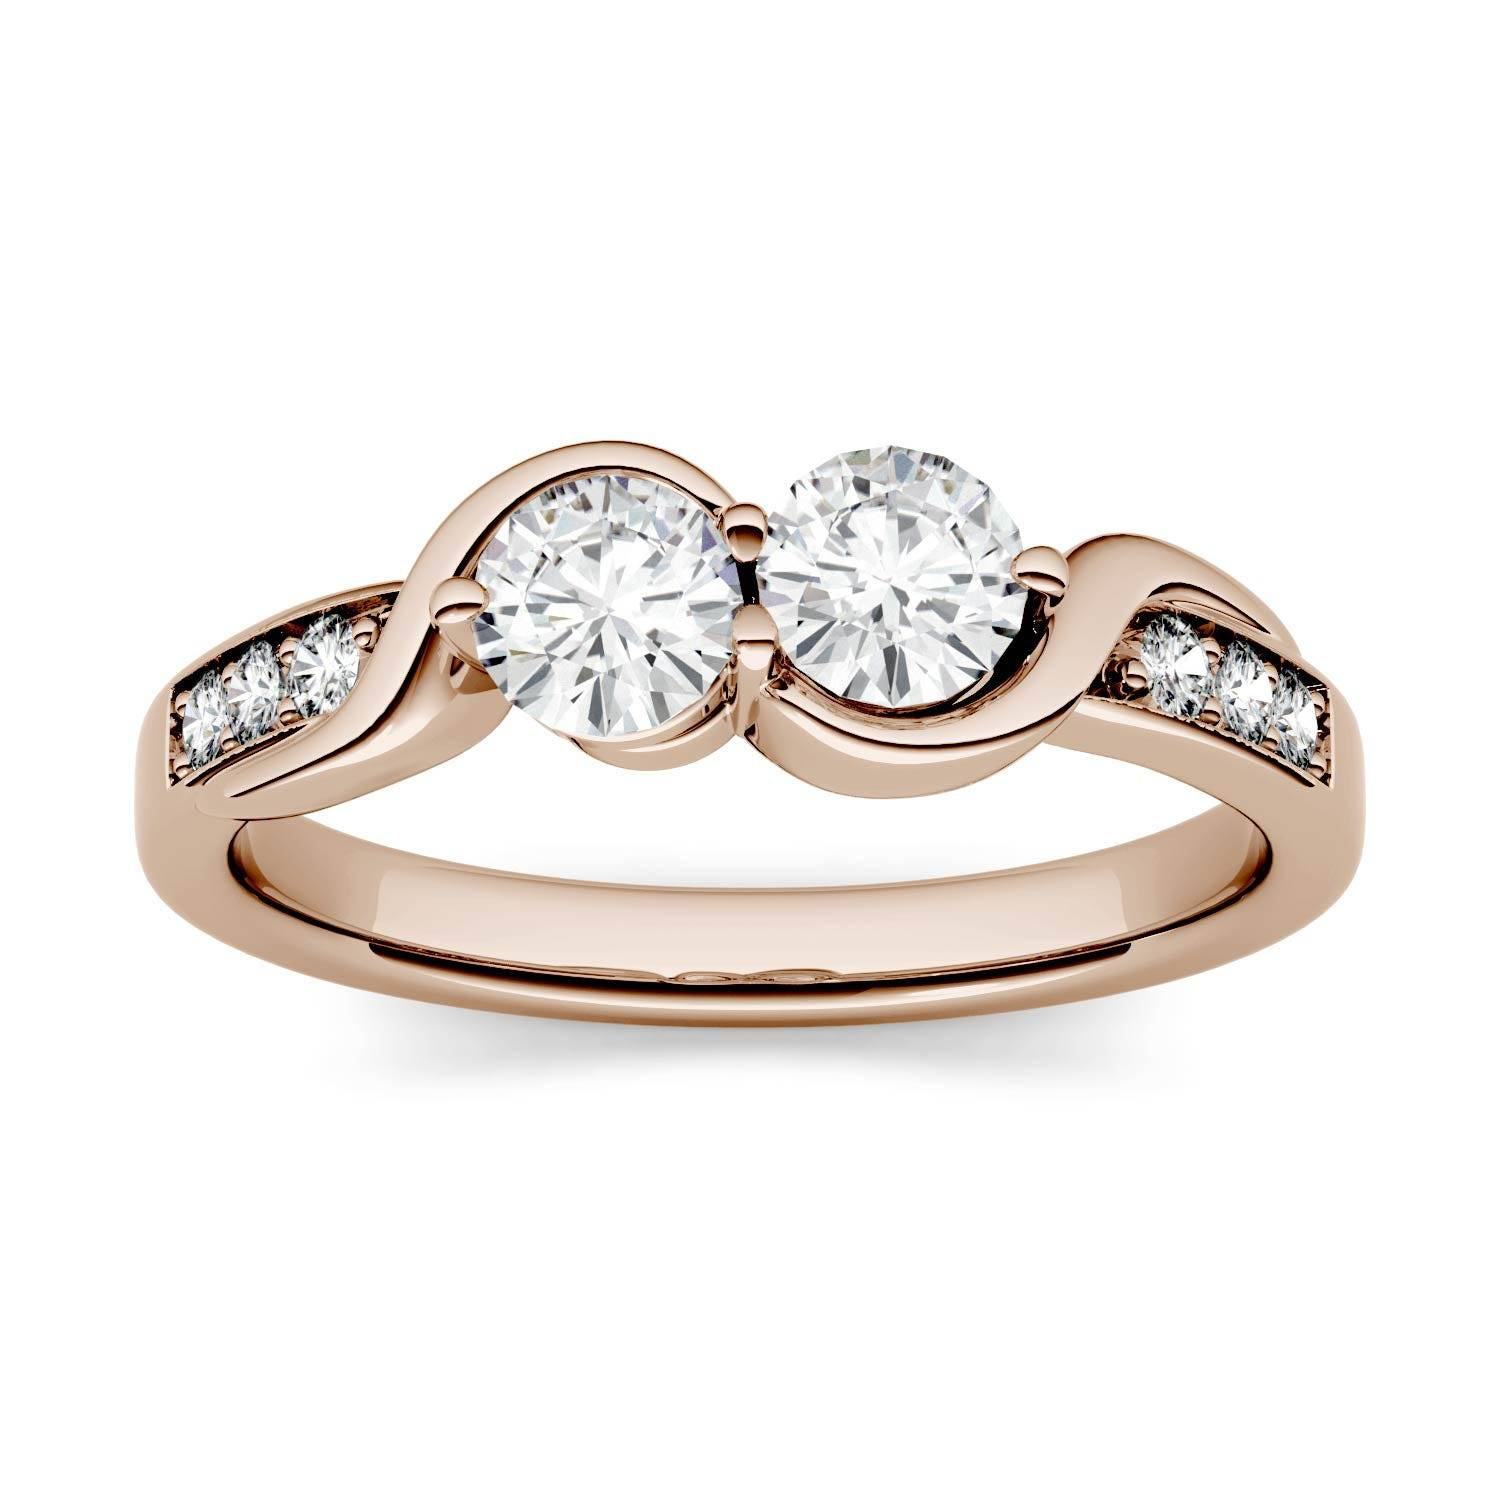 Charles & Colvard Two Stone Swirl with Side Accents Wedding Ring in 14K Rose Gold, Size: 9, 1.12CTW Round Forever One - Colorless Moissanite Charles & Colvard  - Rose Gold - Size: 9